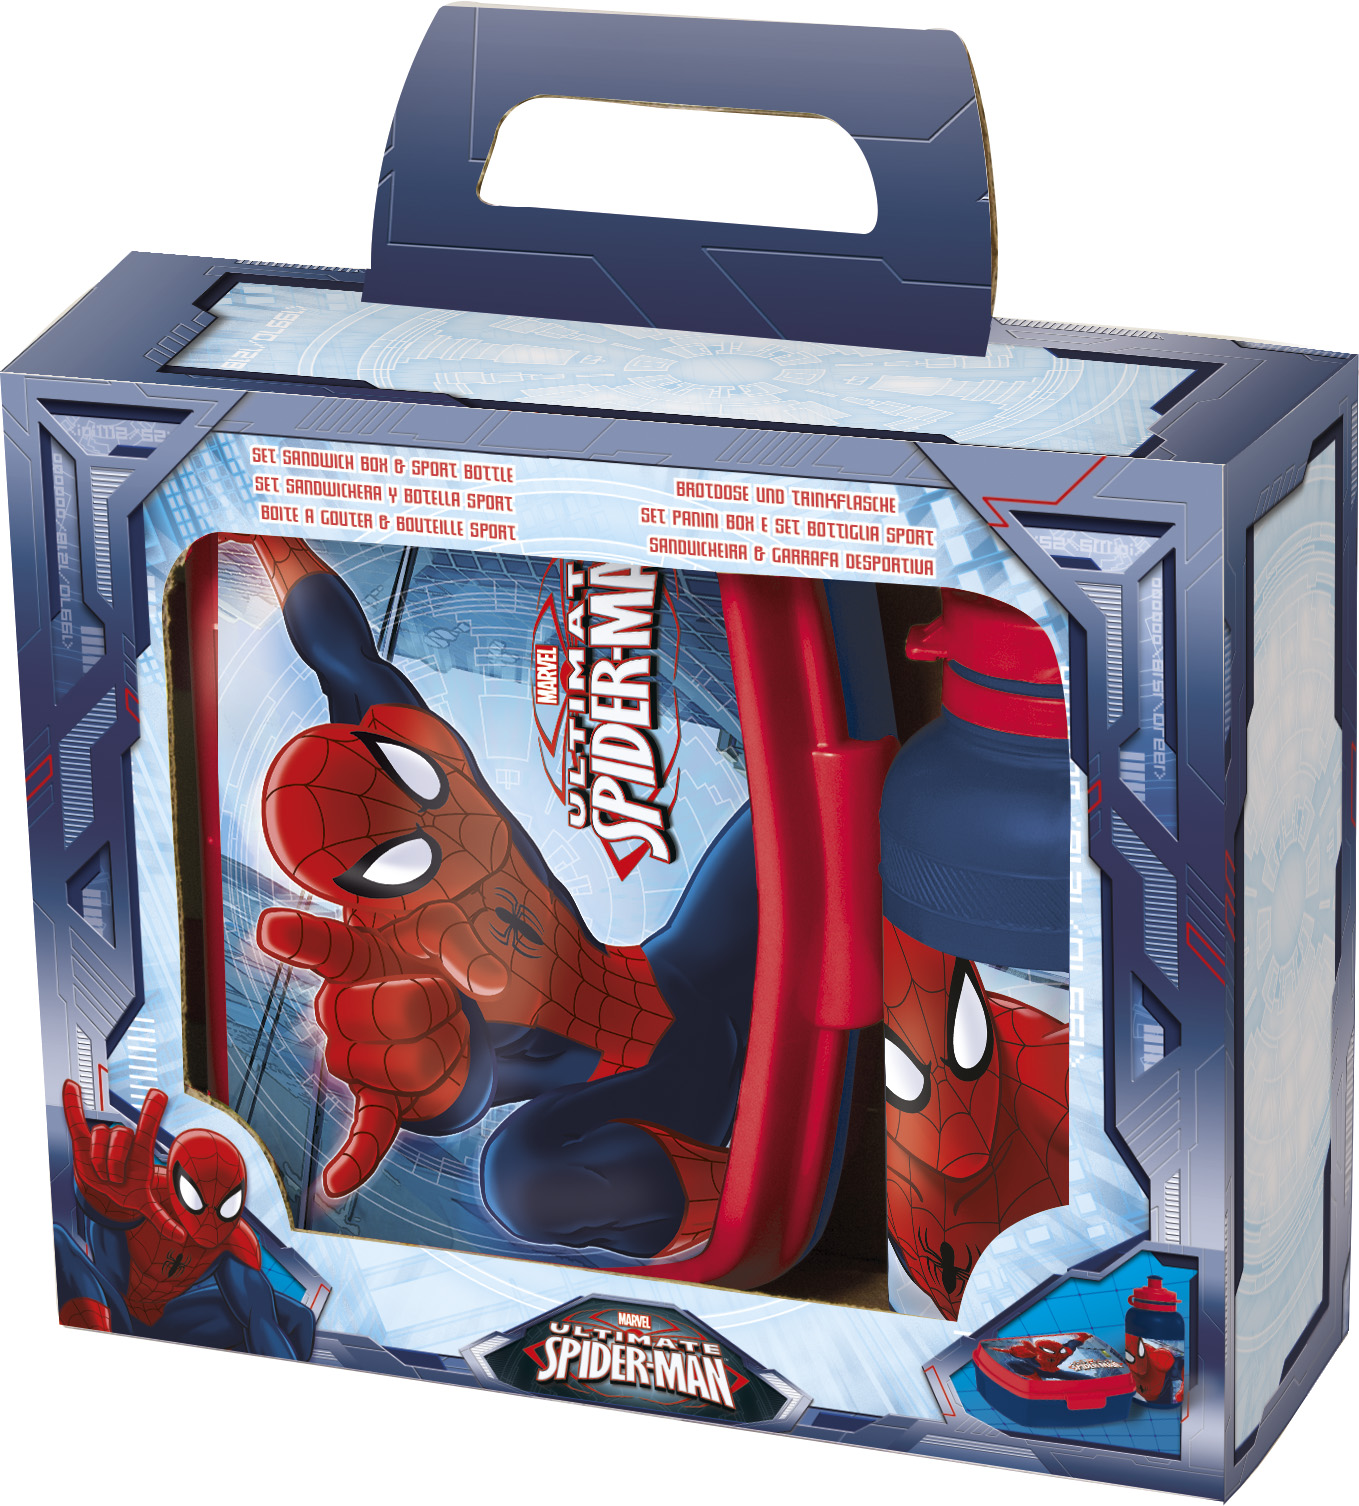 Portamerenda con BORRACCIA in Plastica - DISNEY MARVEL SPIDERMAN